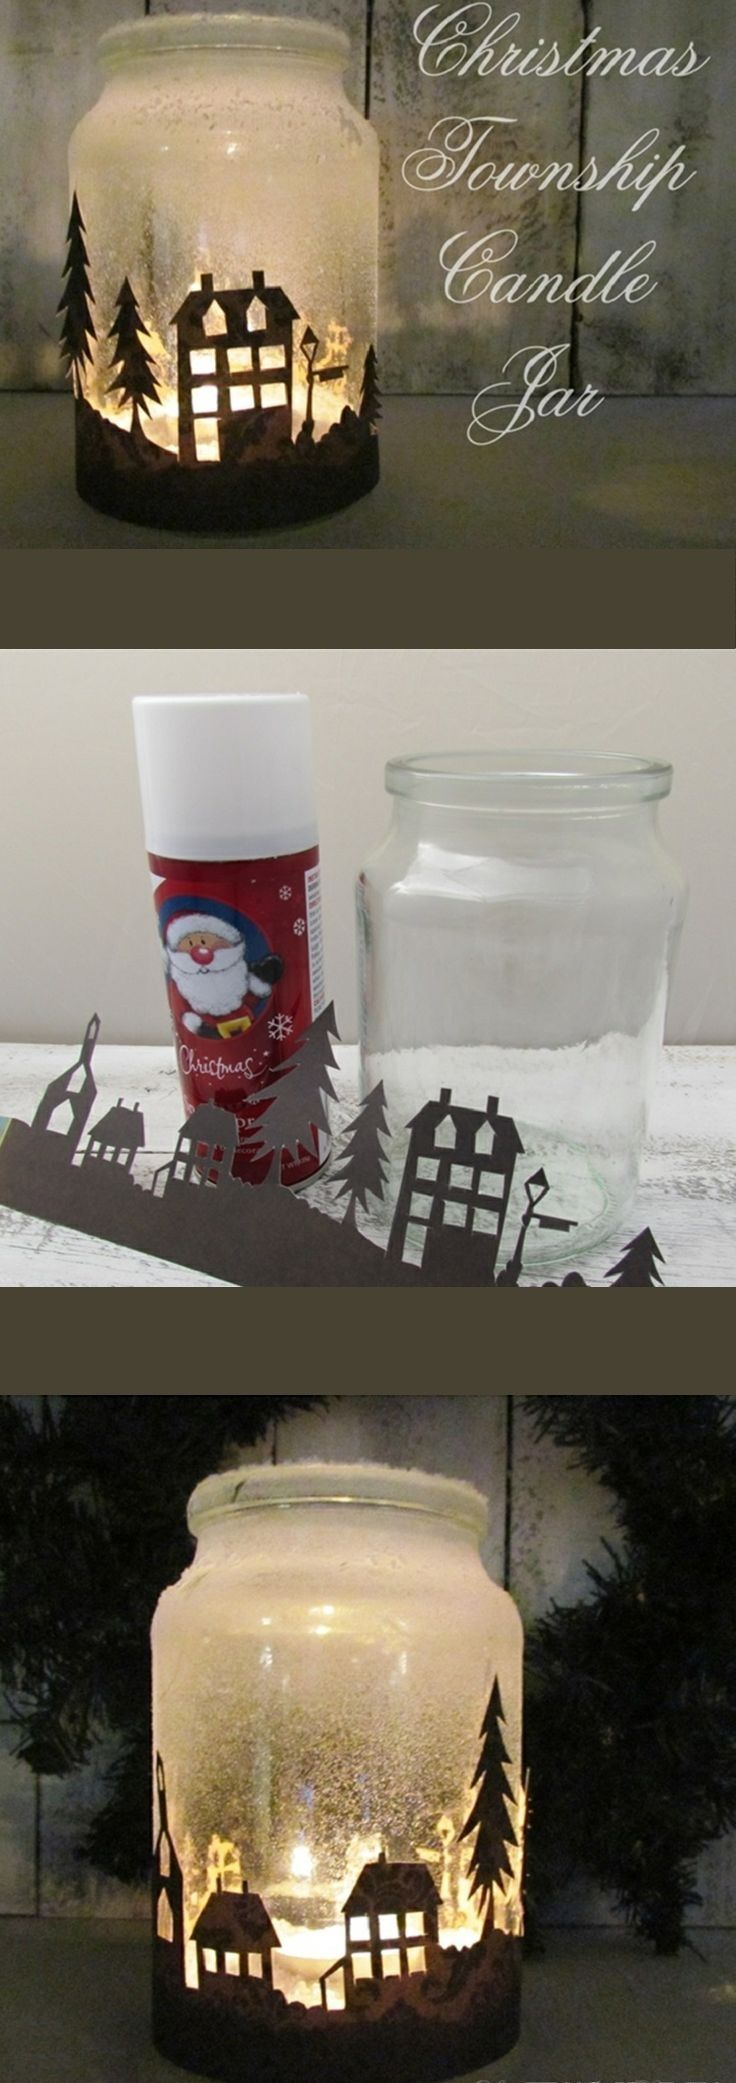 Diy Amazing and Quick Christmas Ideas | Diy & Crafts Ideas Magazine